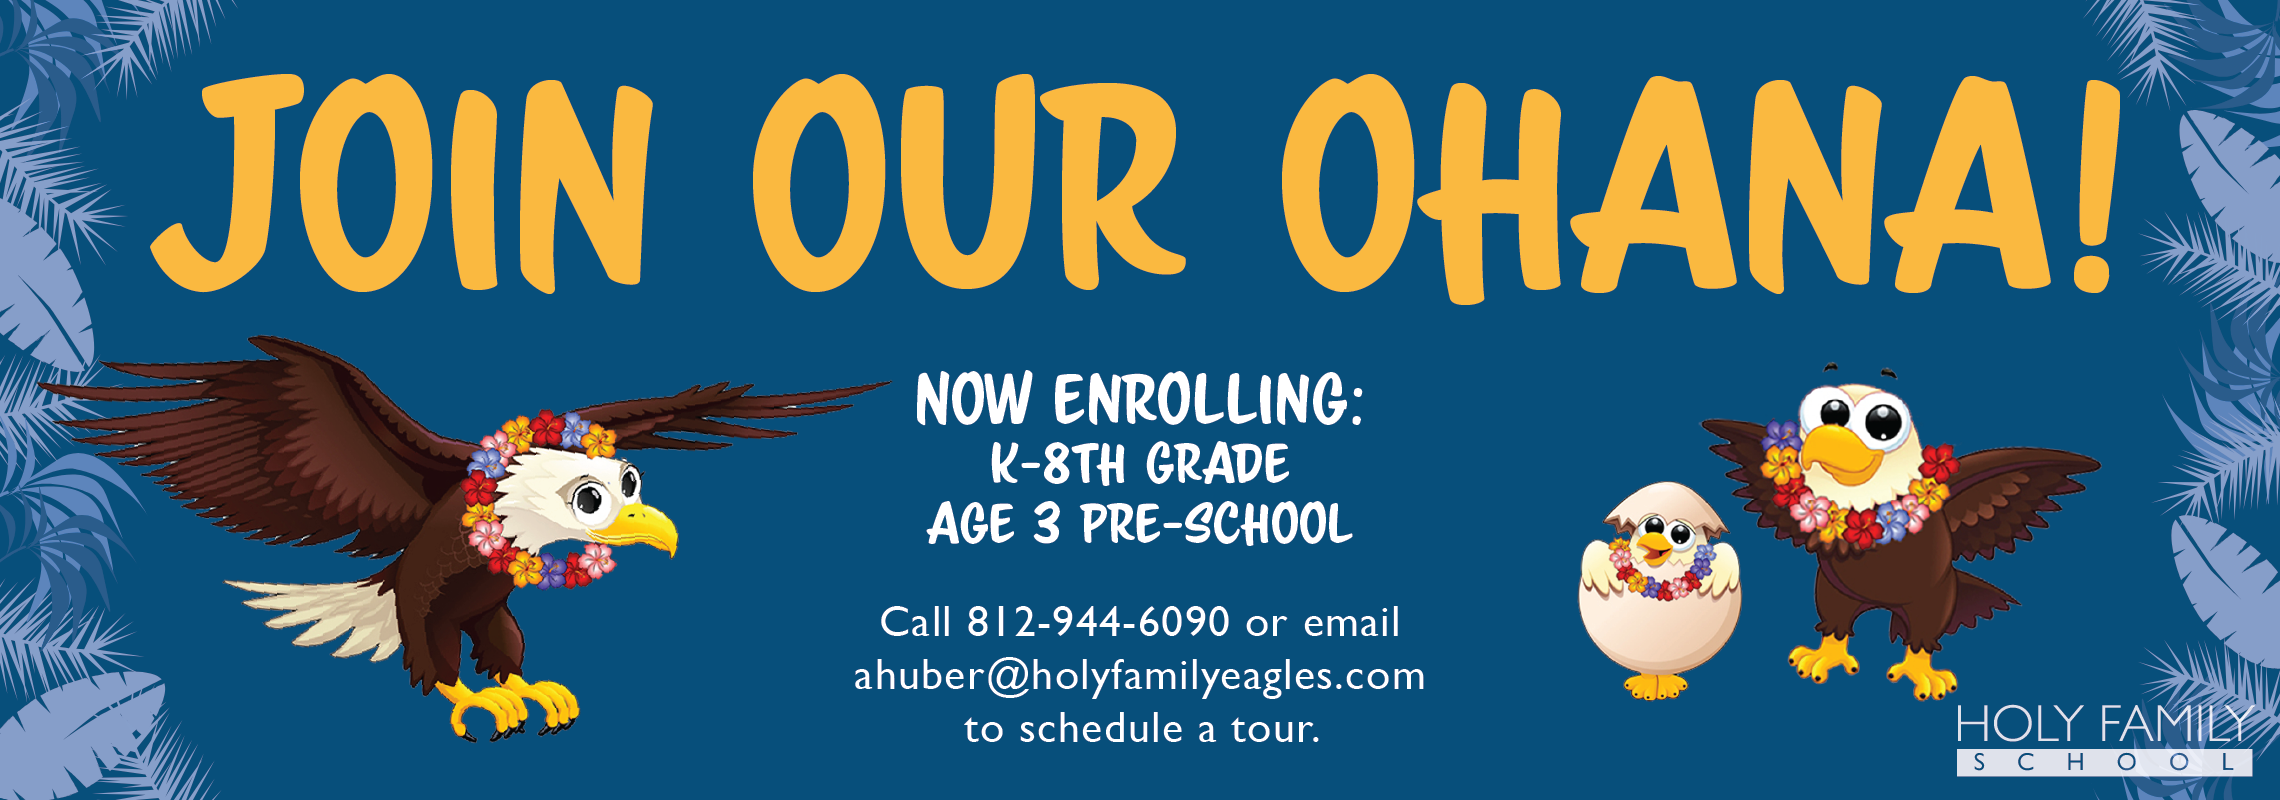 Join our Ohana! Call 812-944-6090 or email ahuber@holyfamilyeagles.com to schedule a tour.